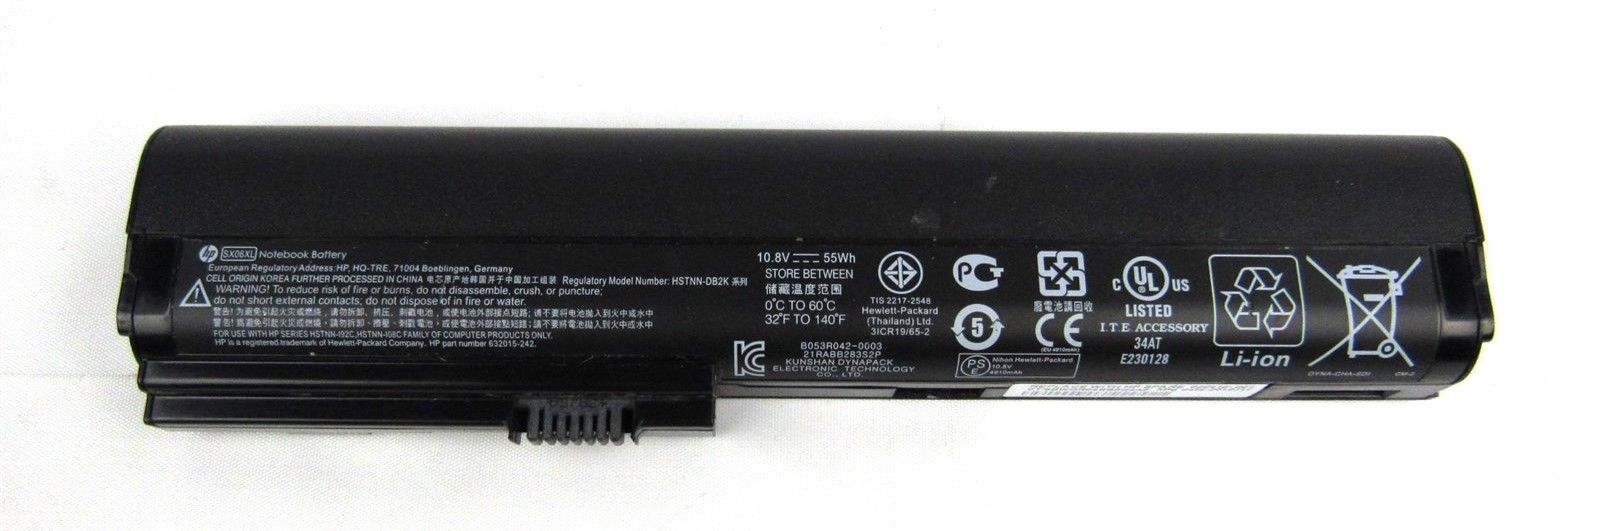 HP EliteBook 2570p 55Wh 10.8V 6 Cell SX06XL Laptop Battery 632015-542 632419-001